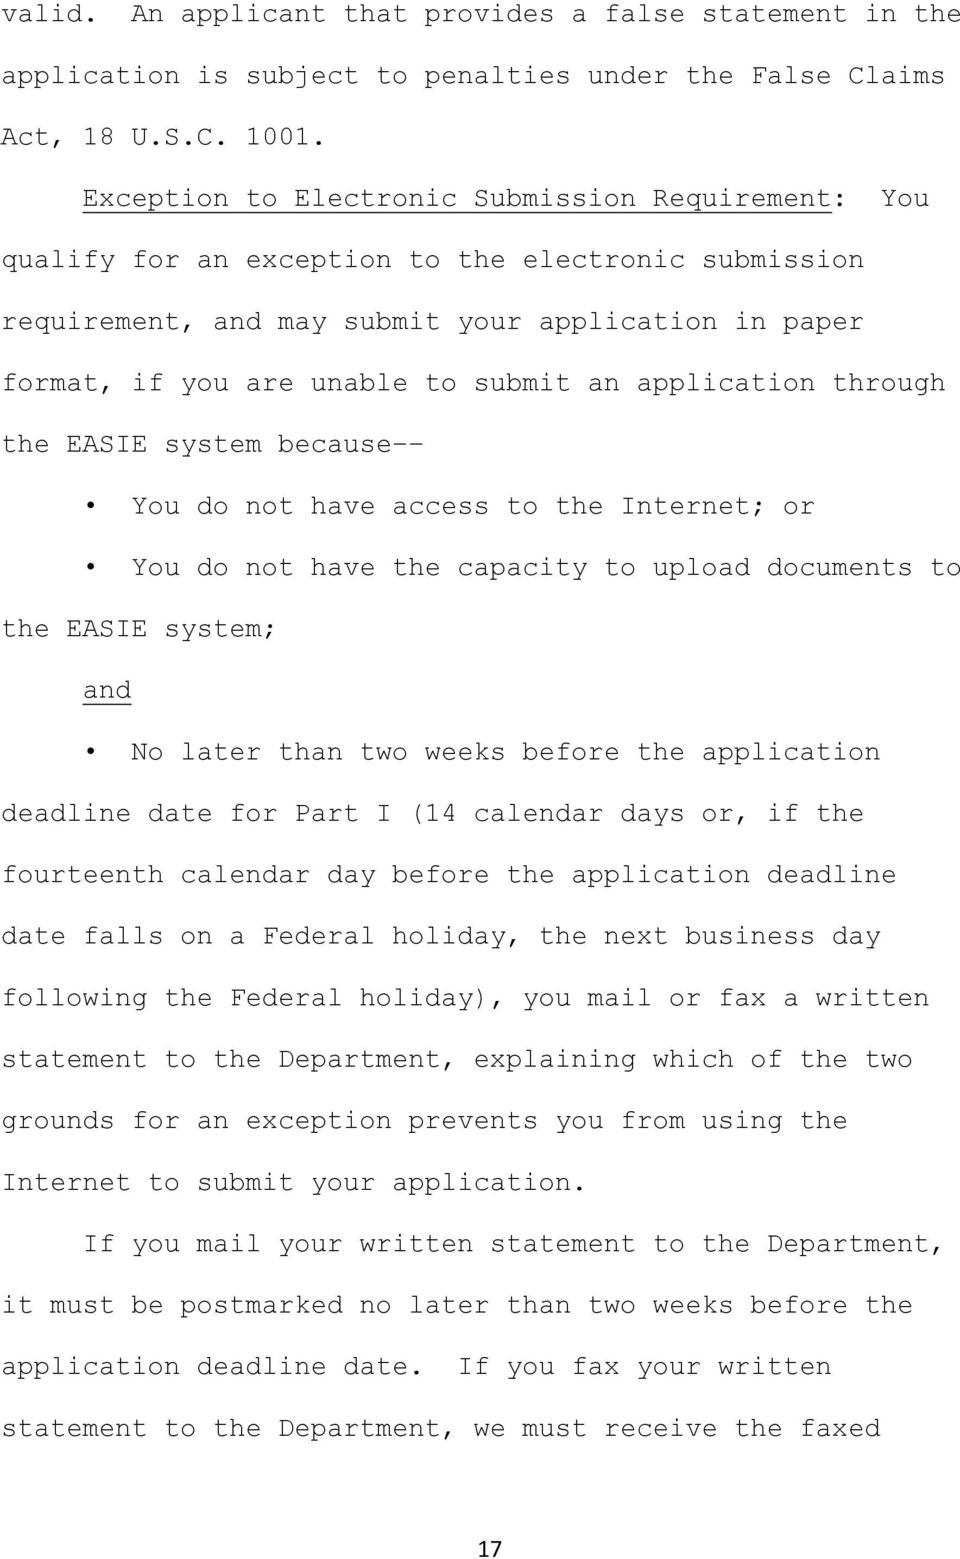 application through the EASIE system because You do not have access to the Internet; or You do not have the capacity to upload documents to the EASIE system; and No later than two weeks before the